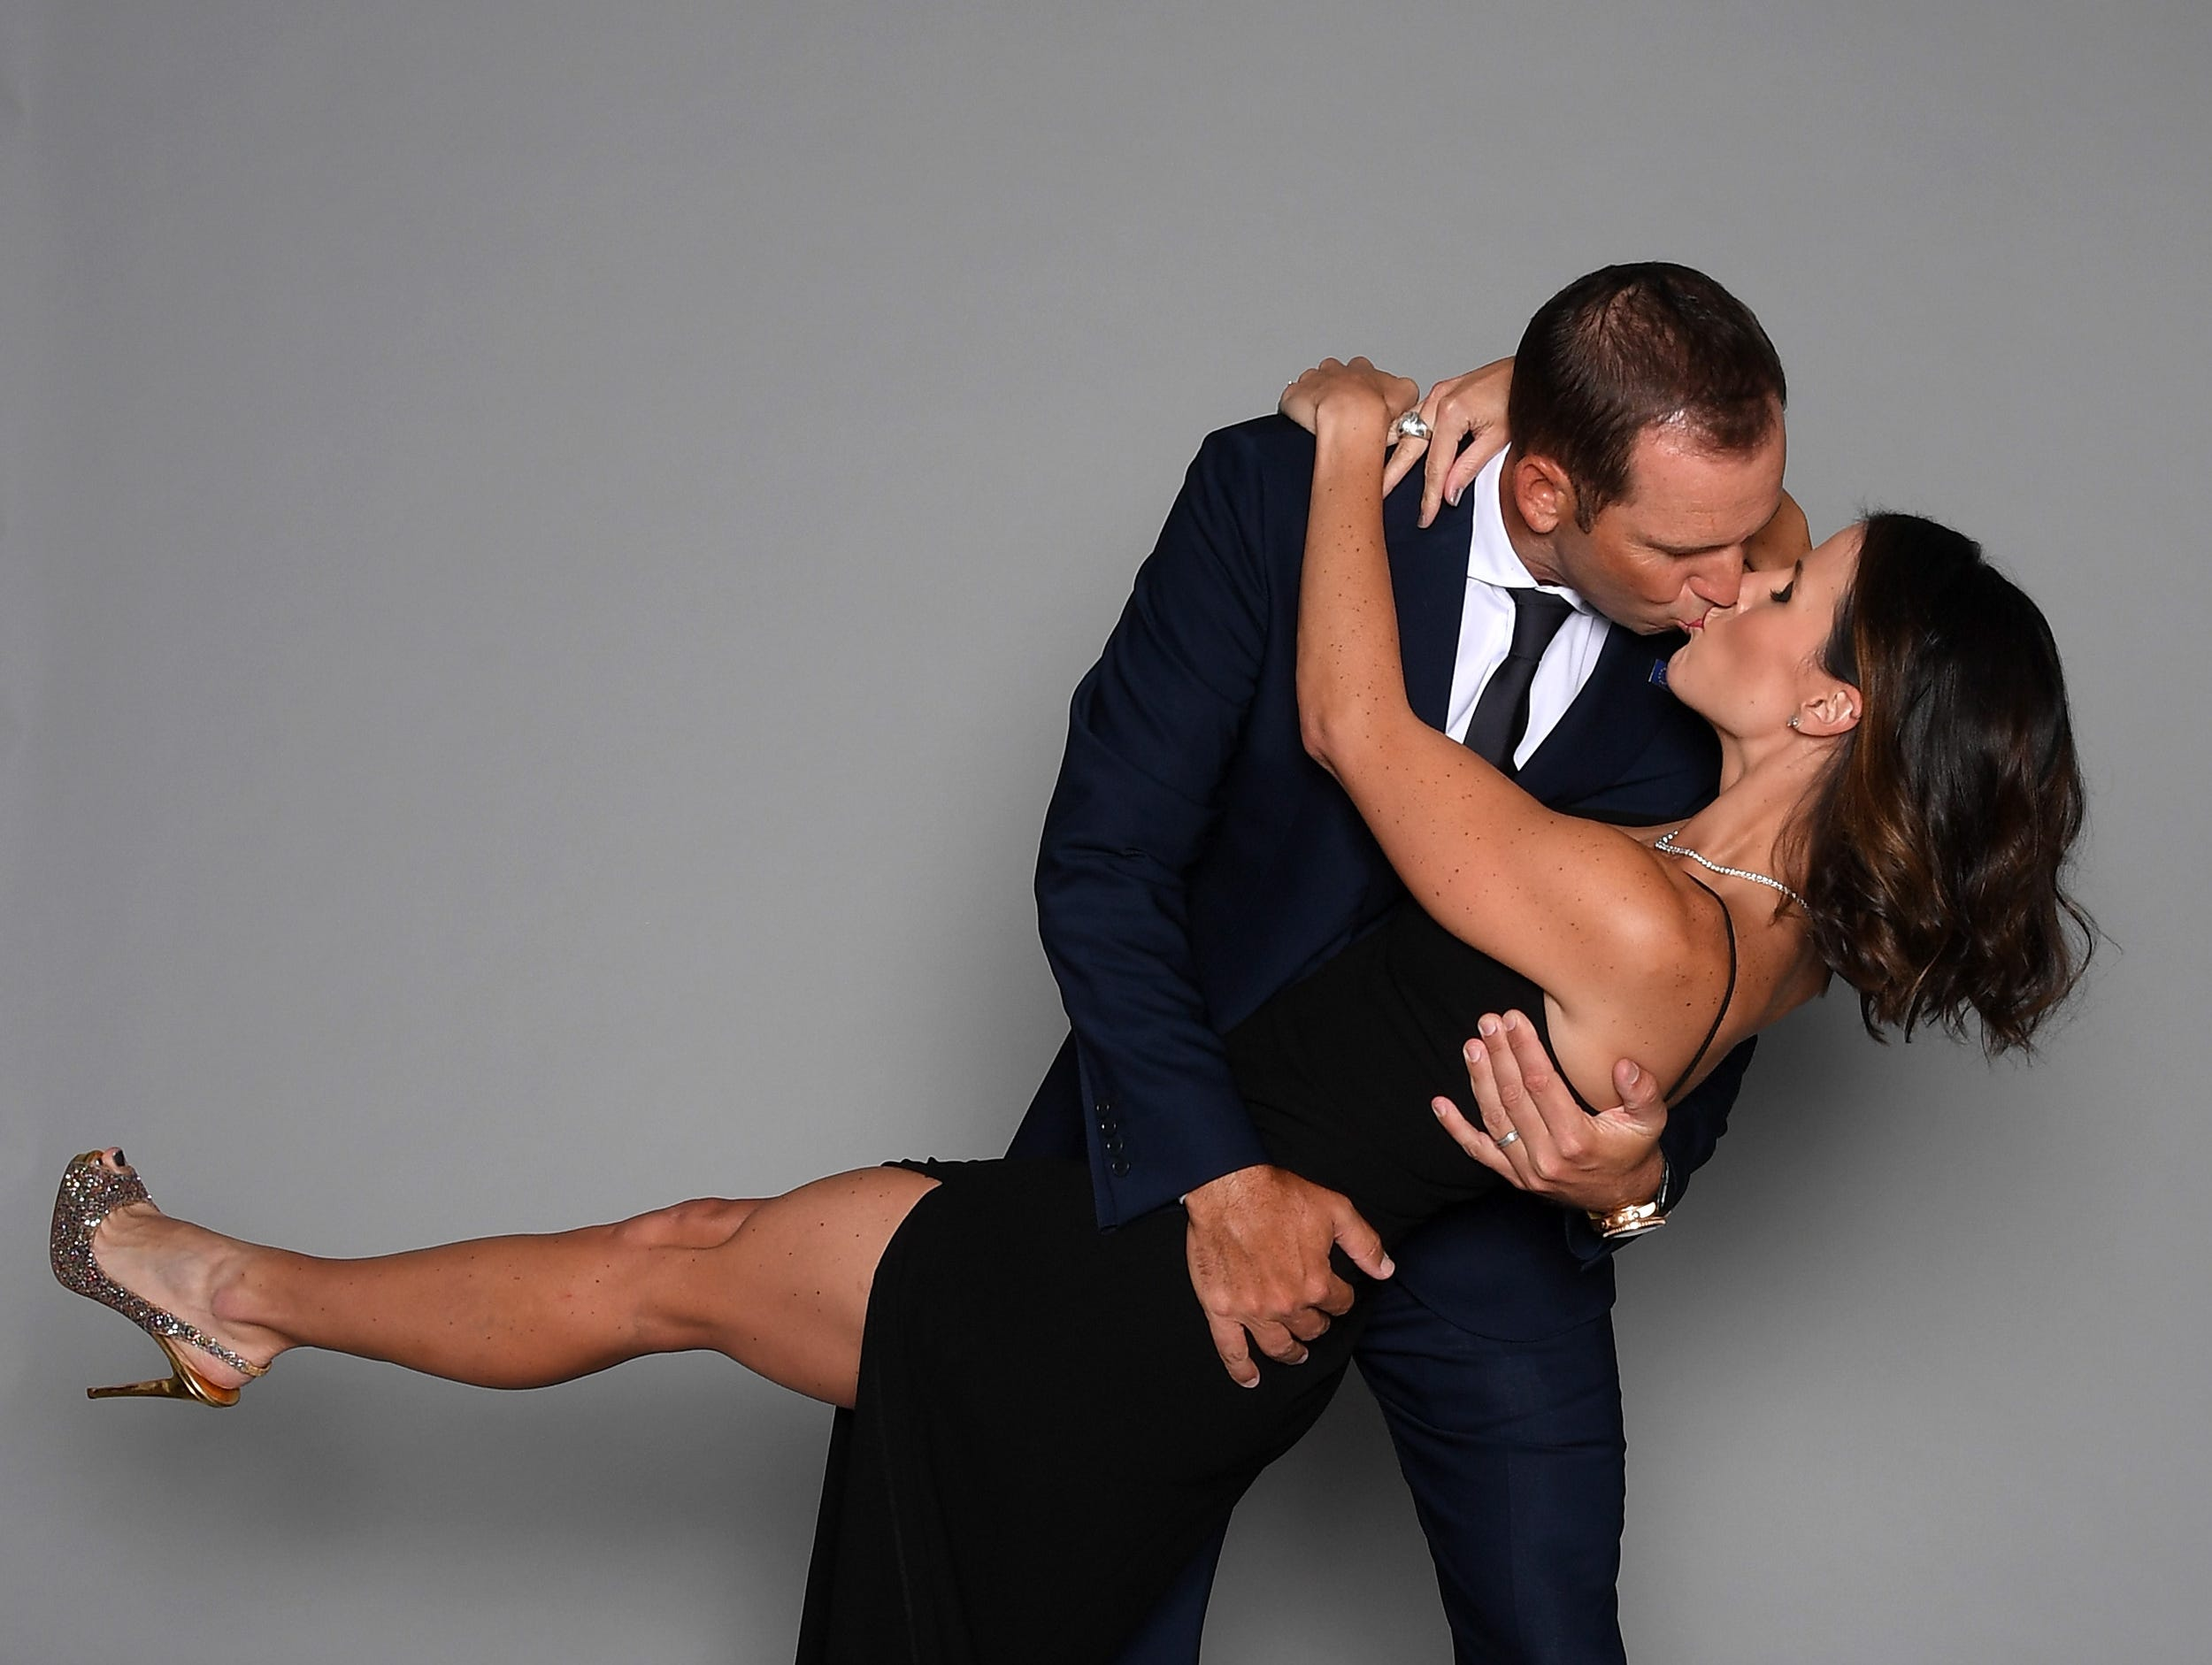 Sergio Garcia of Europe and wife Angela Garcia share a kiss in a portrait before the Ryder Cup gala.